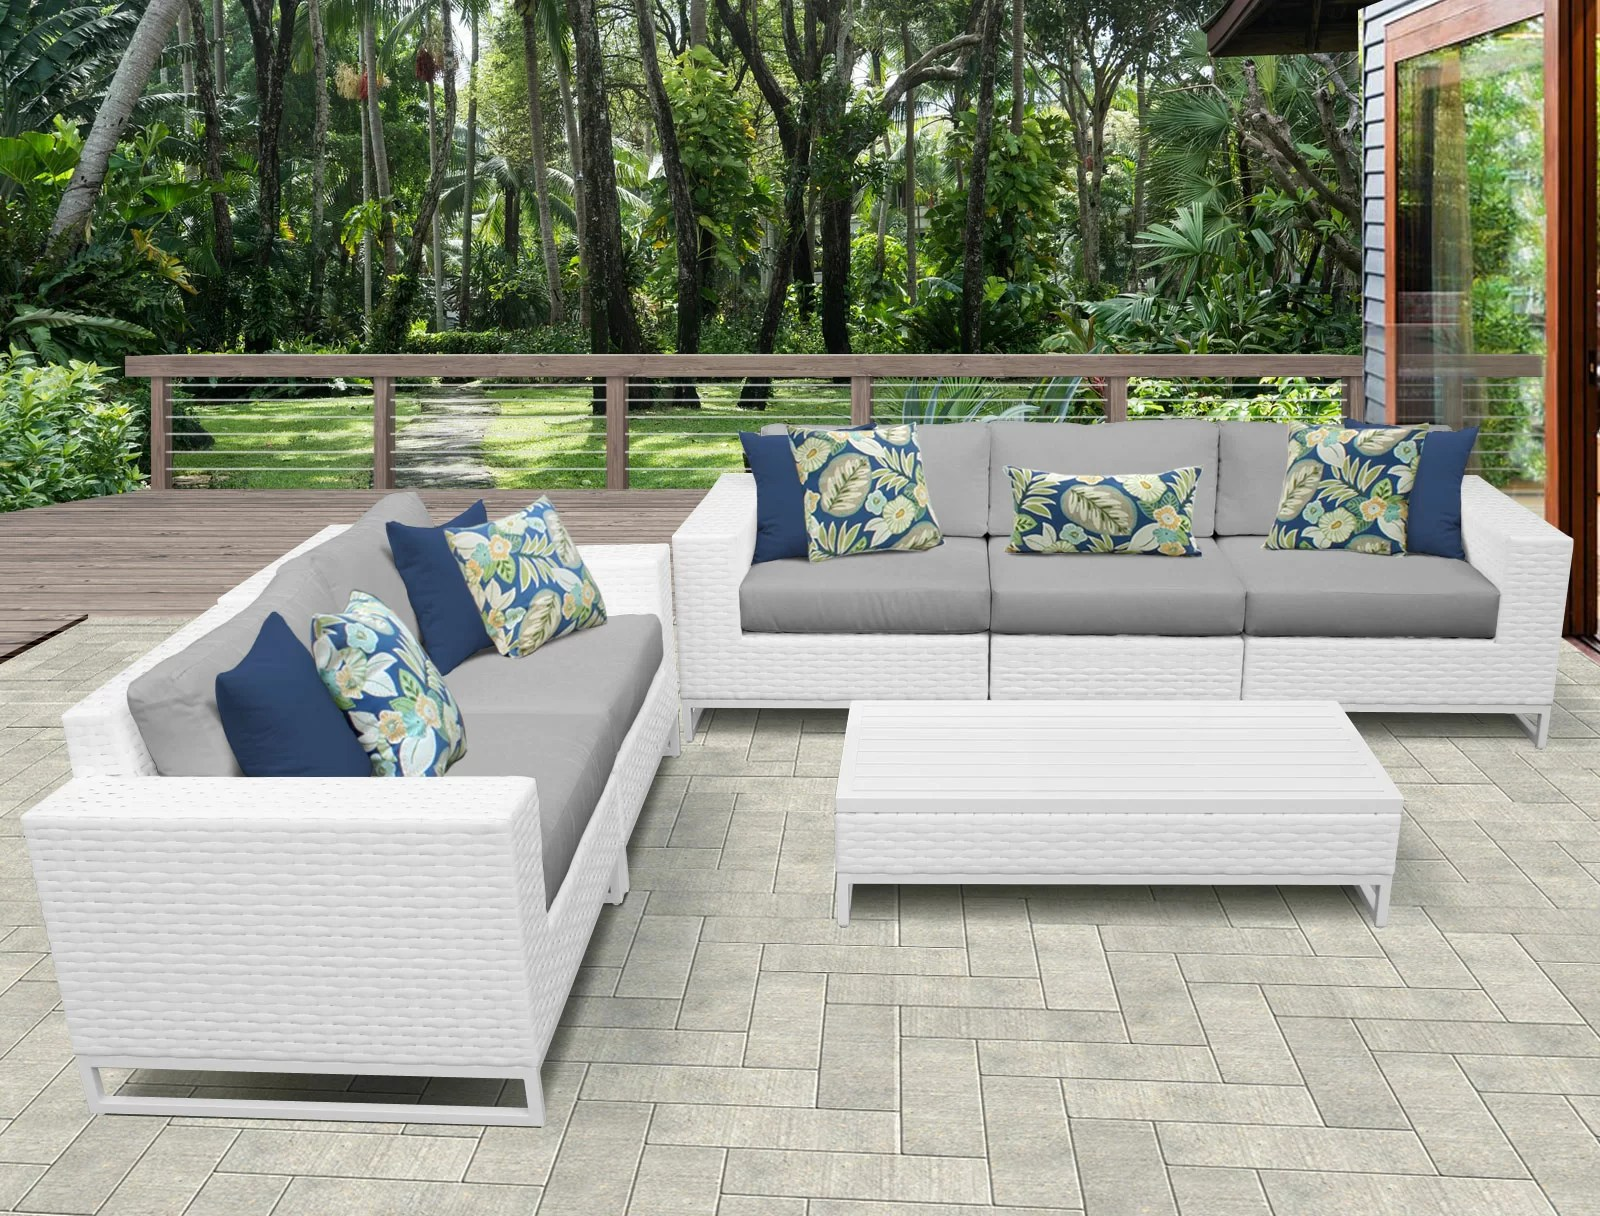 Sofa Palette Miami 6 Piece Sofa Seating Group With Cushions